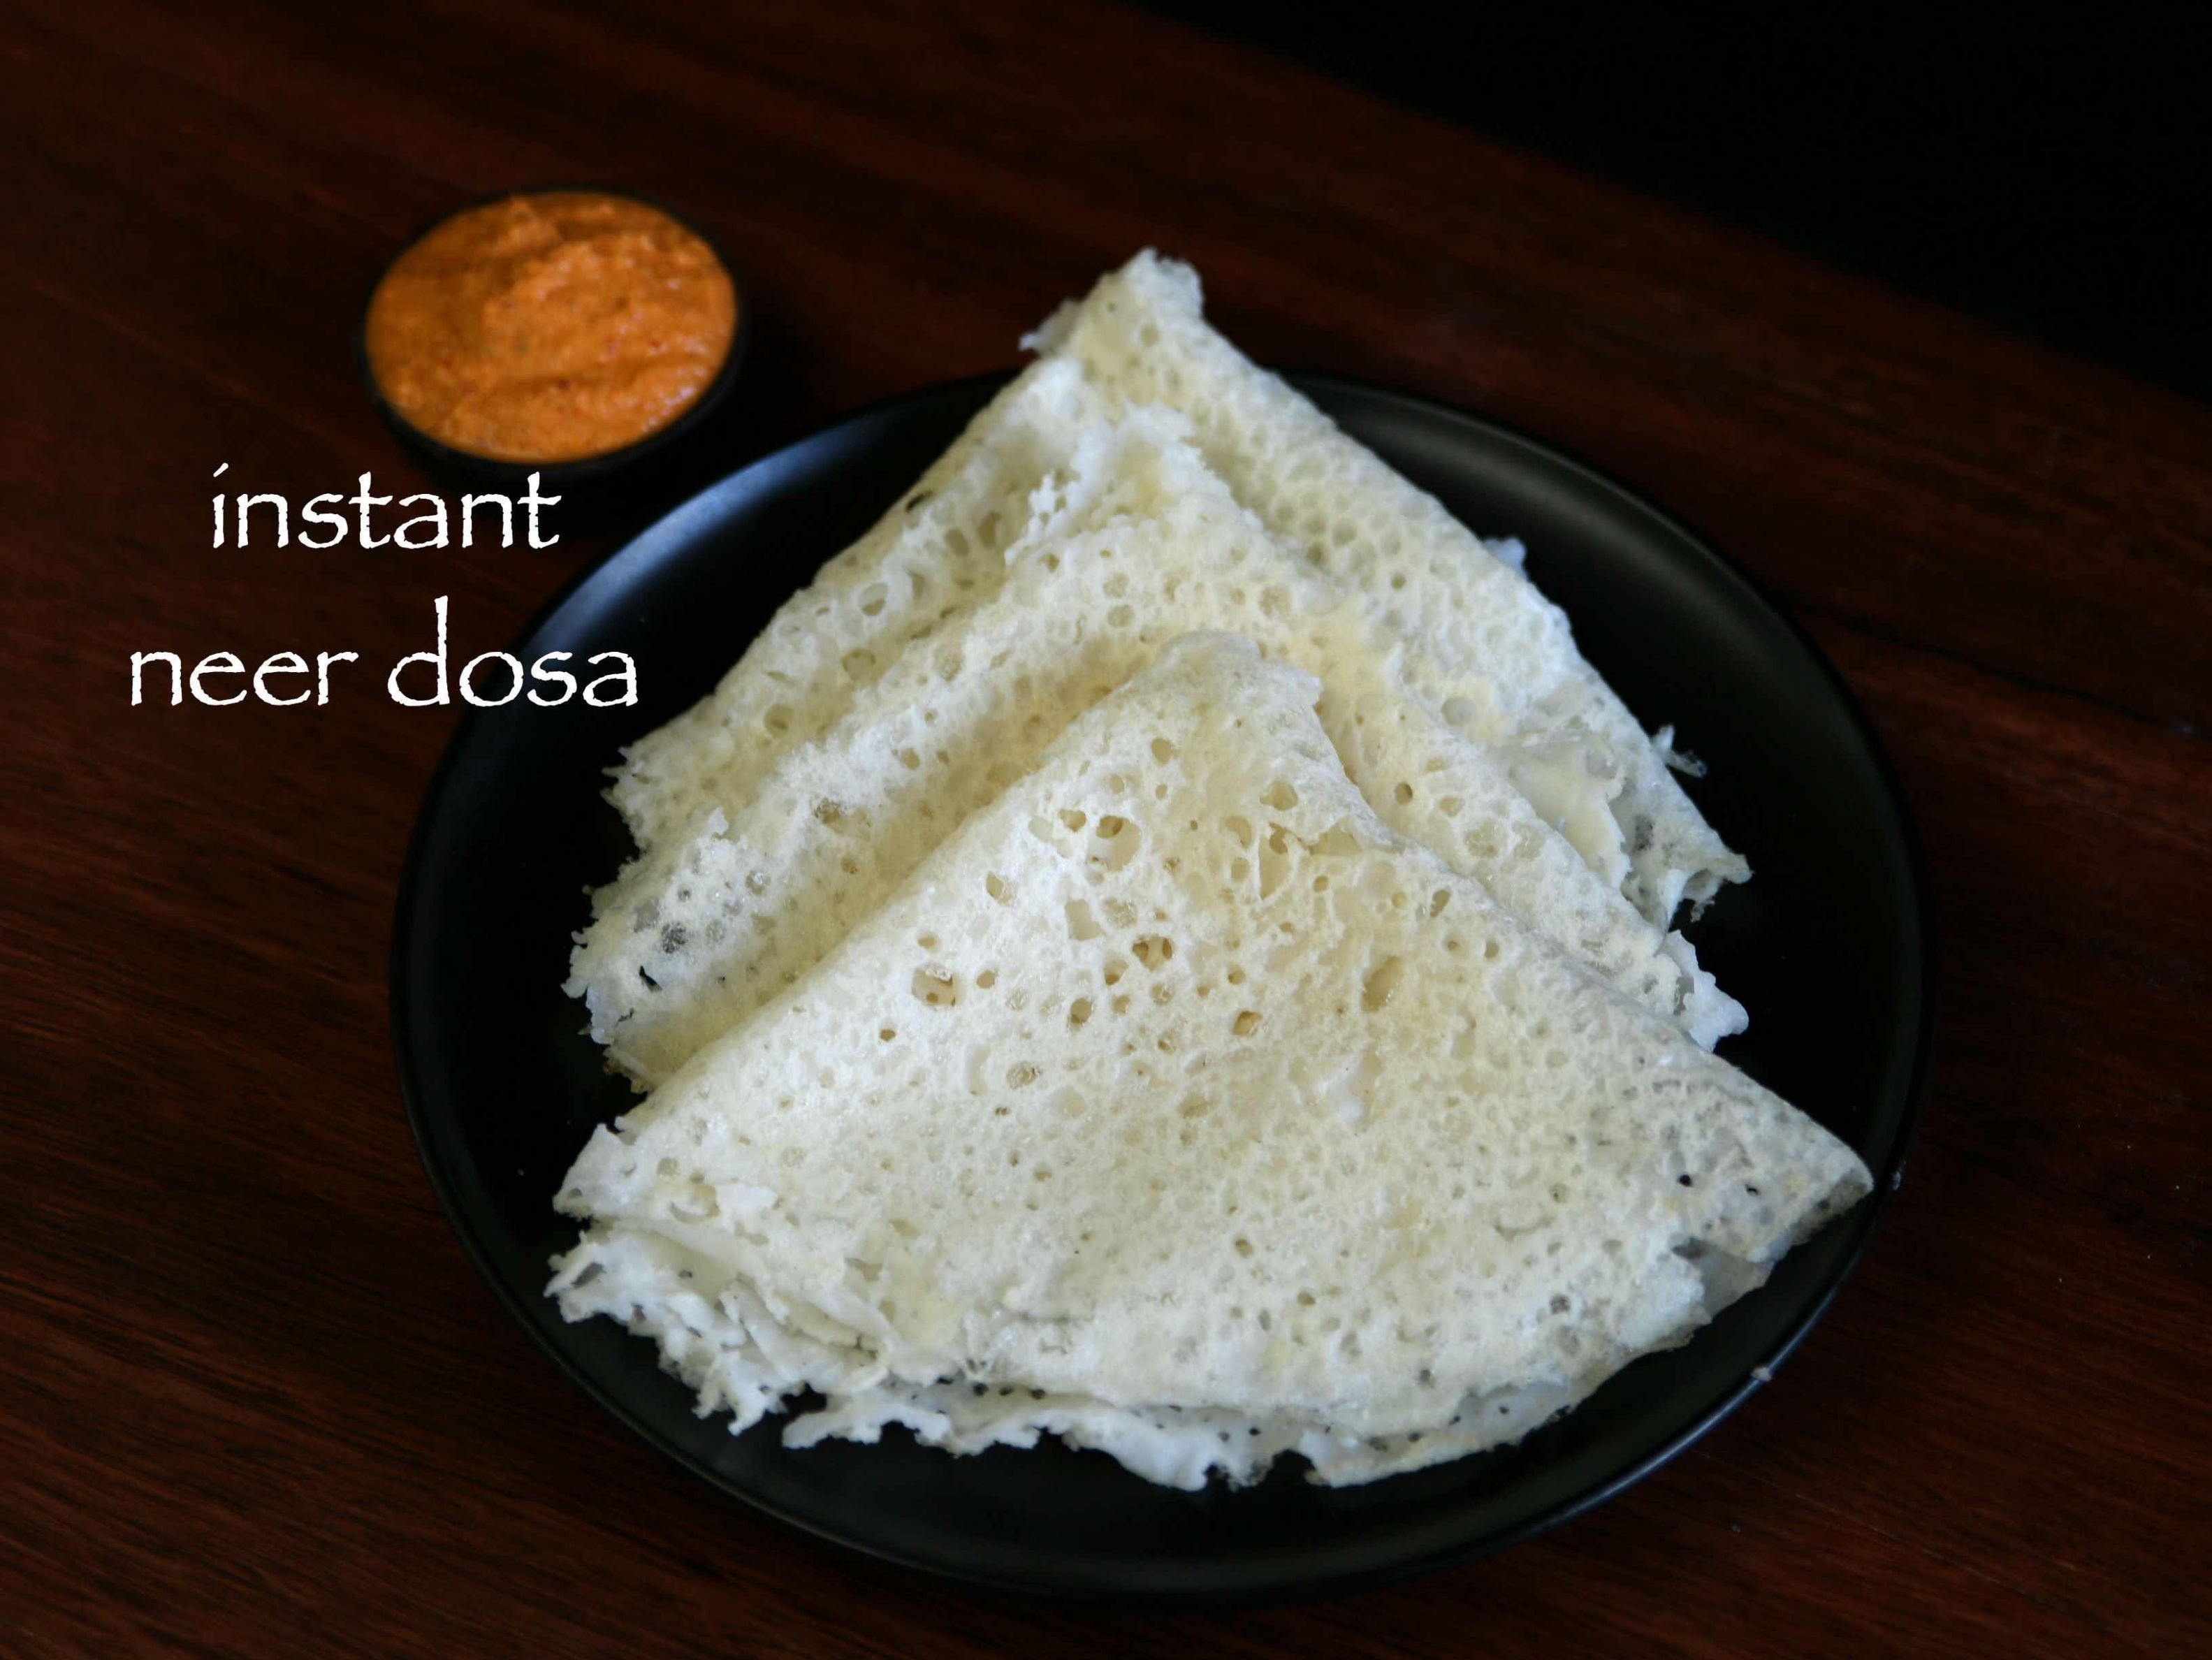 instant neer dosa recipe | neer dose recipe with rice flour - Recipes Of Rice Flour